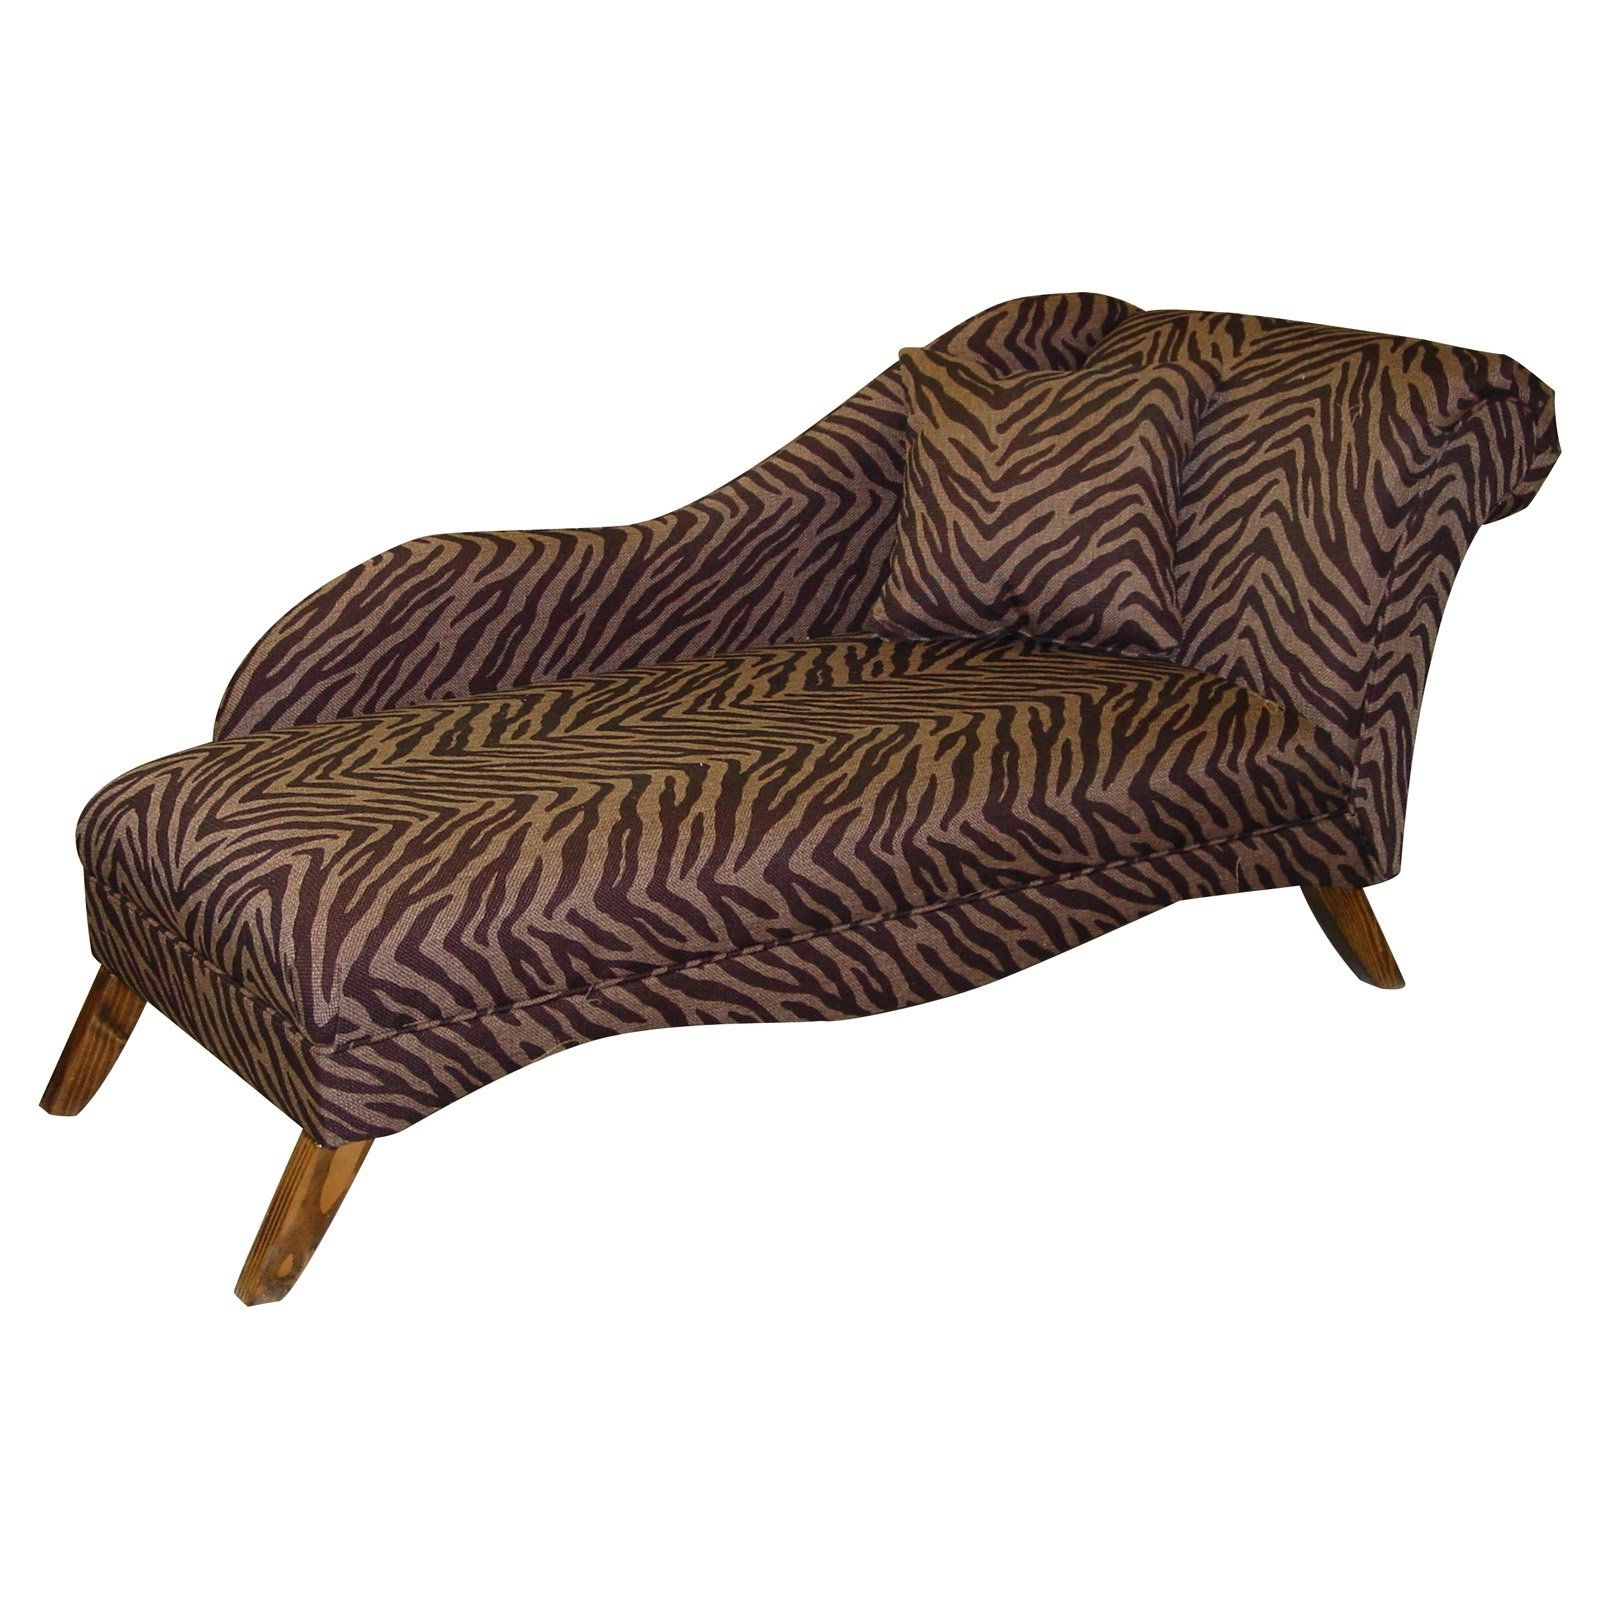 Leopard Print Chaise Lounges Inside Well Known Unbelievable Leopard Chaise Lounge With Image For Animal Print (View 6 of 15)